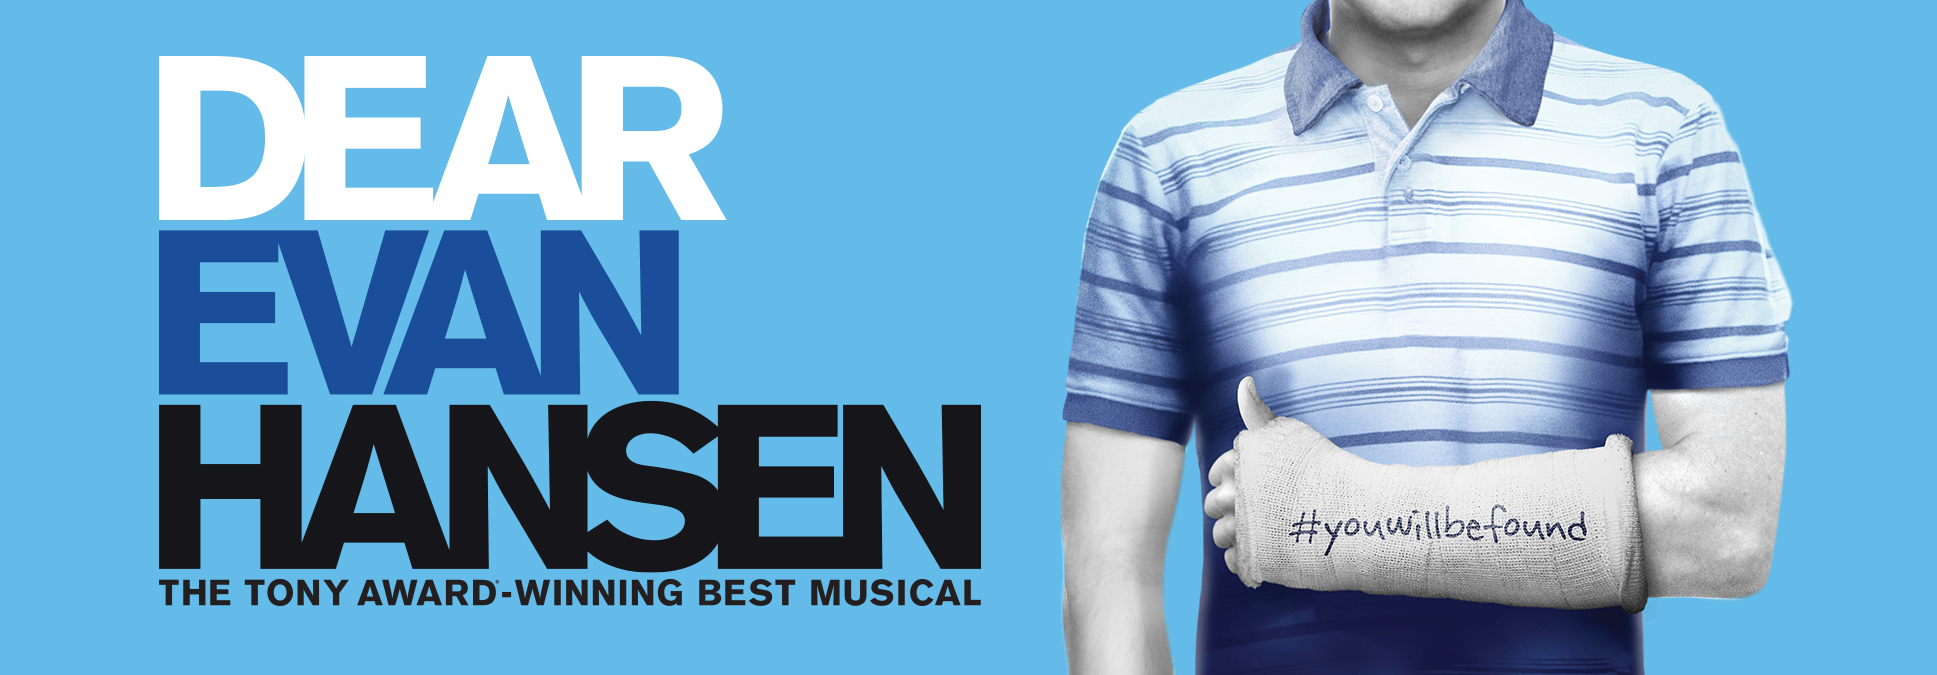 Dear Evan Hansen at the Marcus Center in Milwaukee, WI